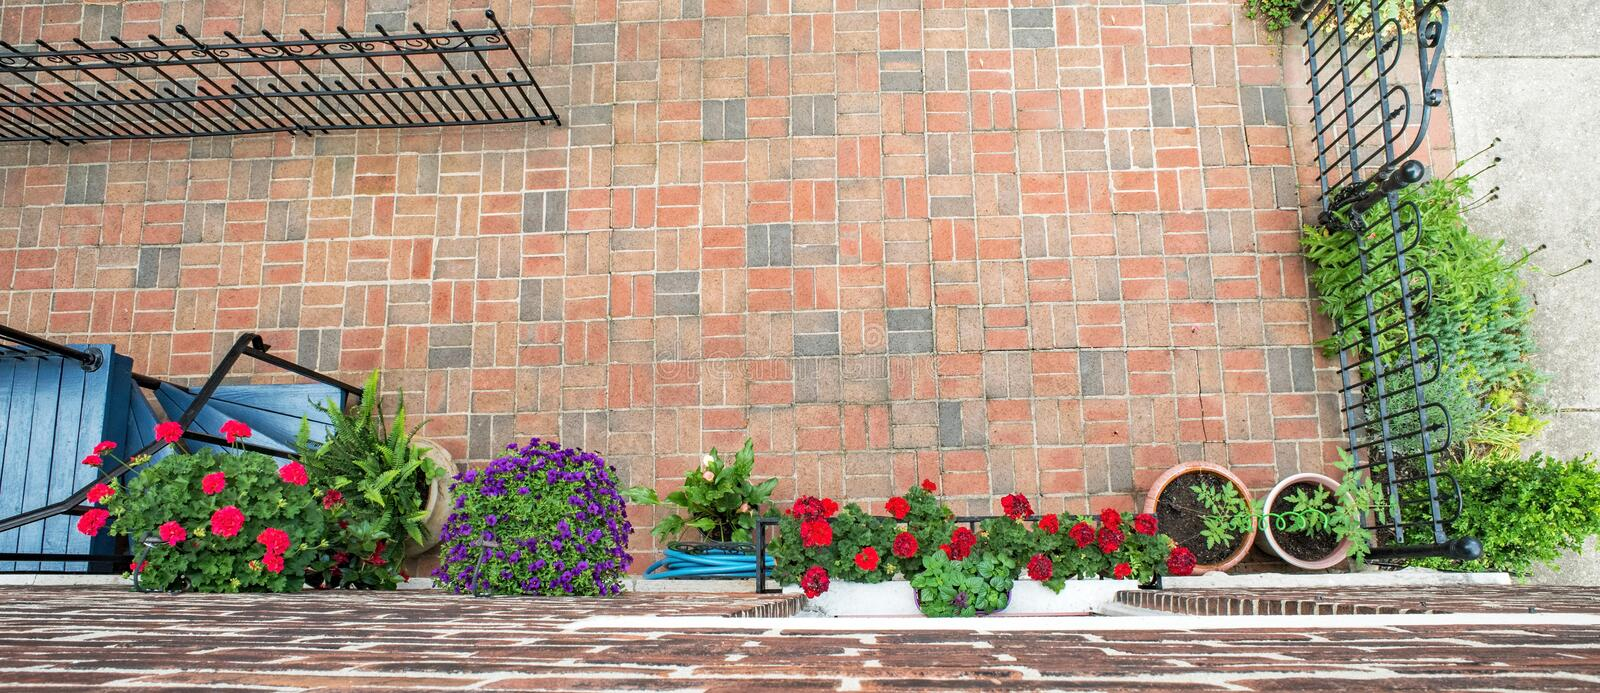 Urban Court Flowers & Plants from Above royalty free stock photography